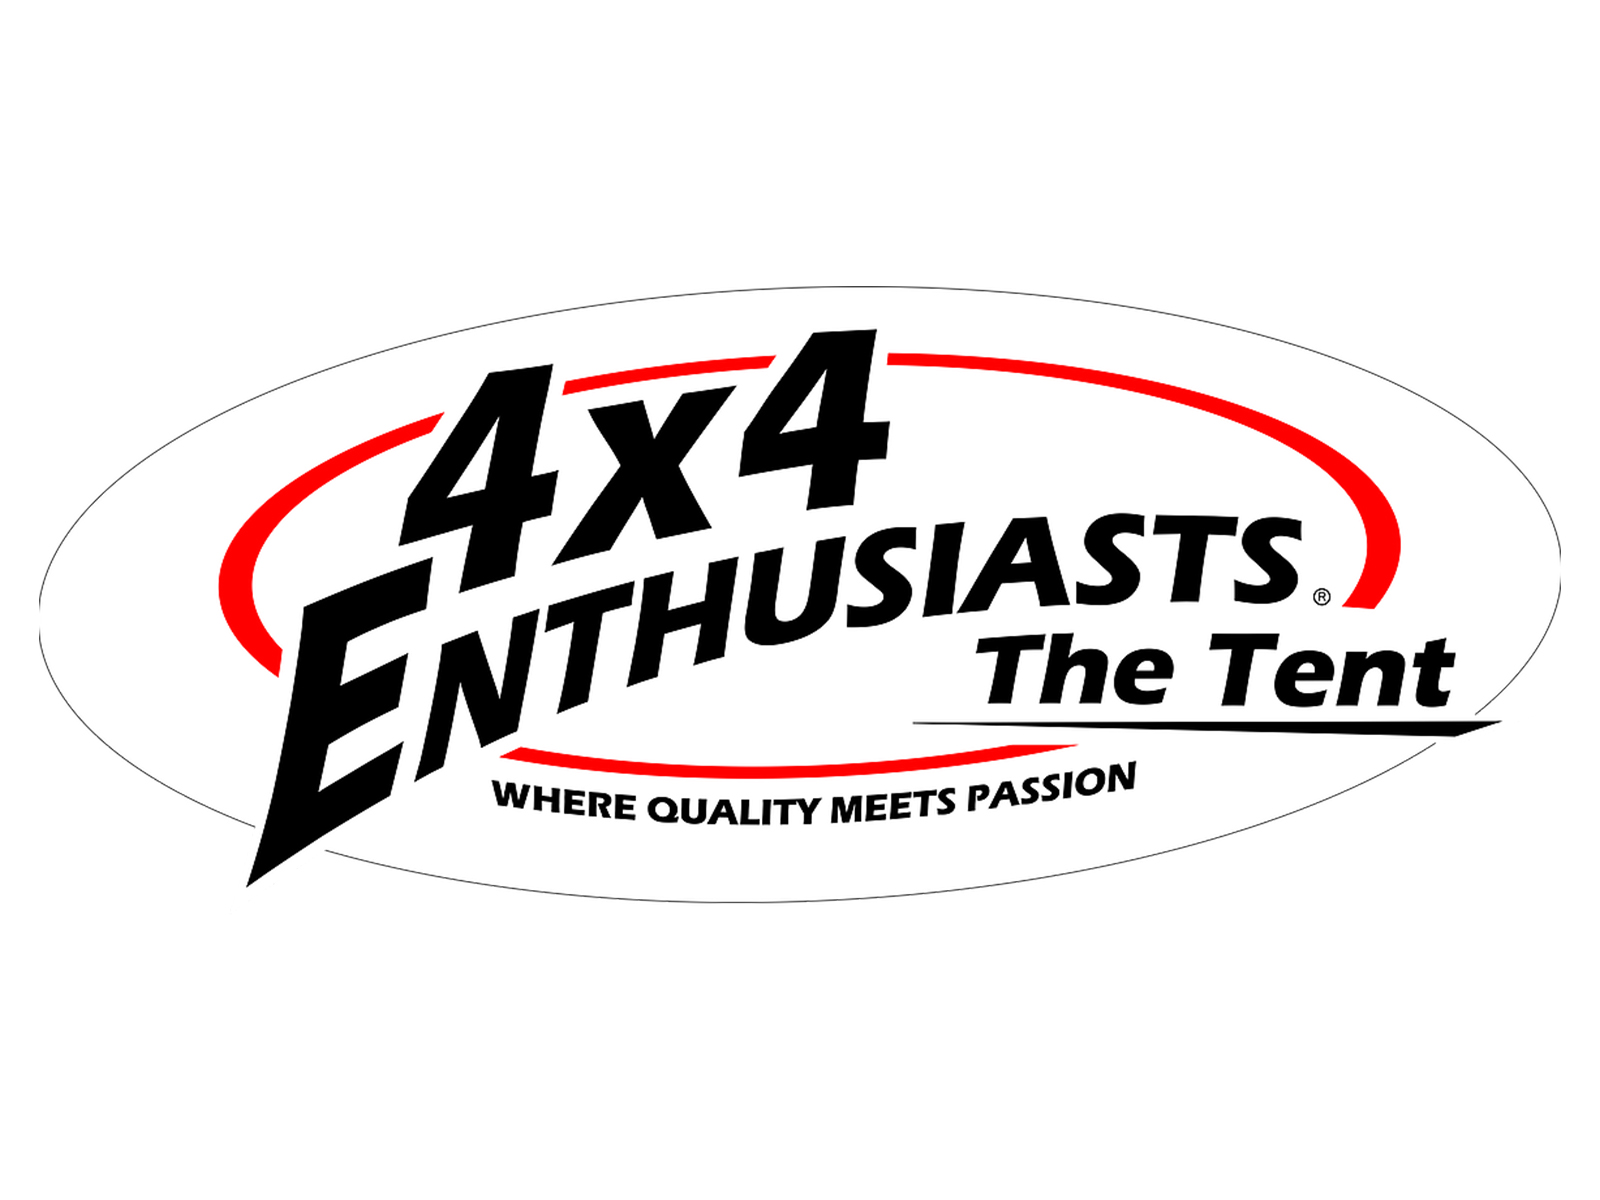 4x4-Enthusiasts - The-Tent